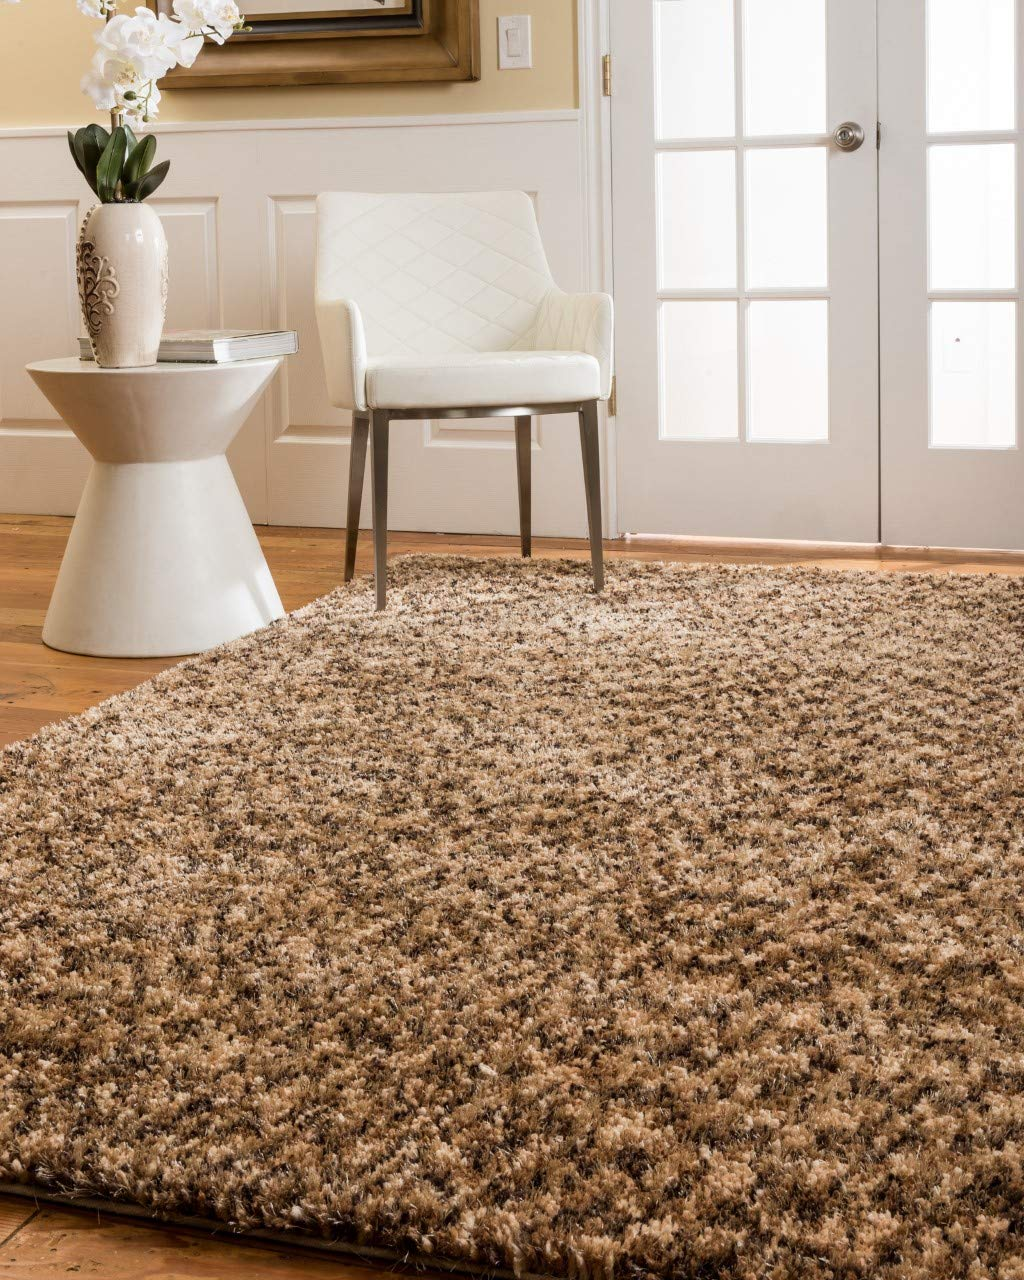 Natural Area Rugs Hand-Crafted Maldives Polyester Rug 6 x 9 Honey